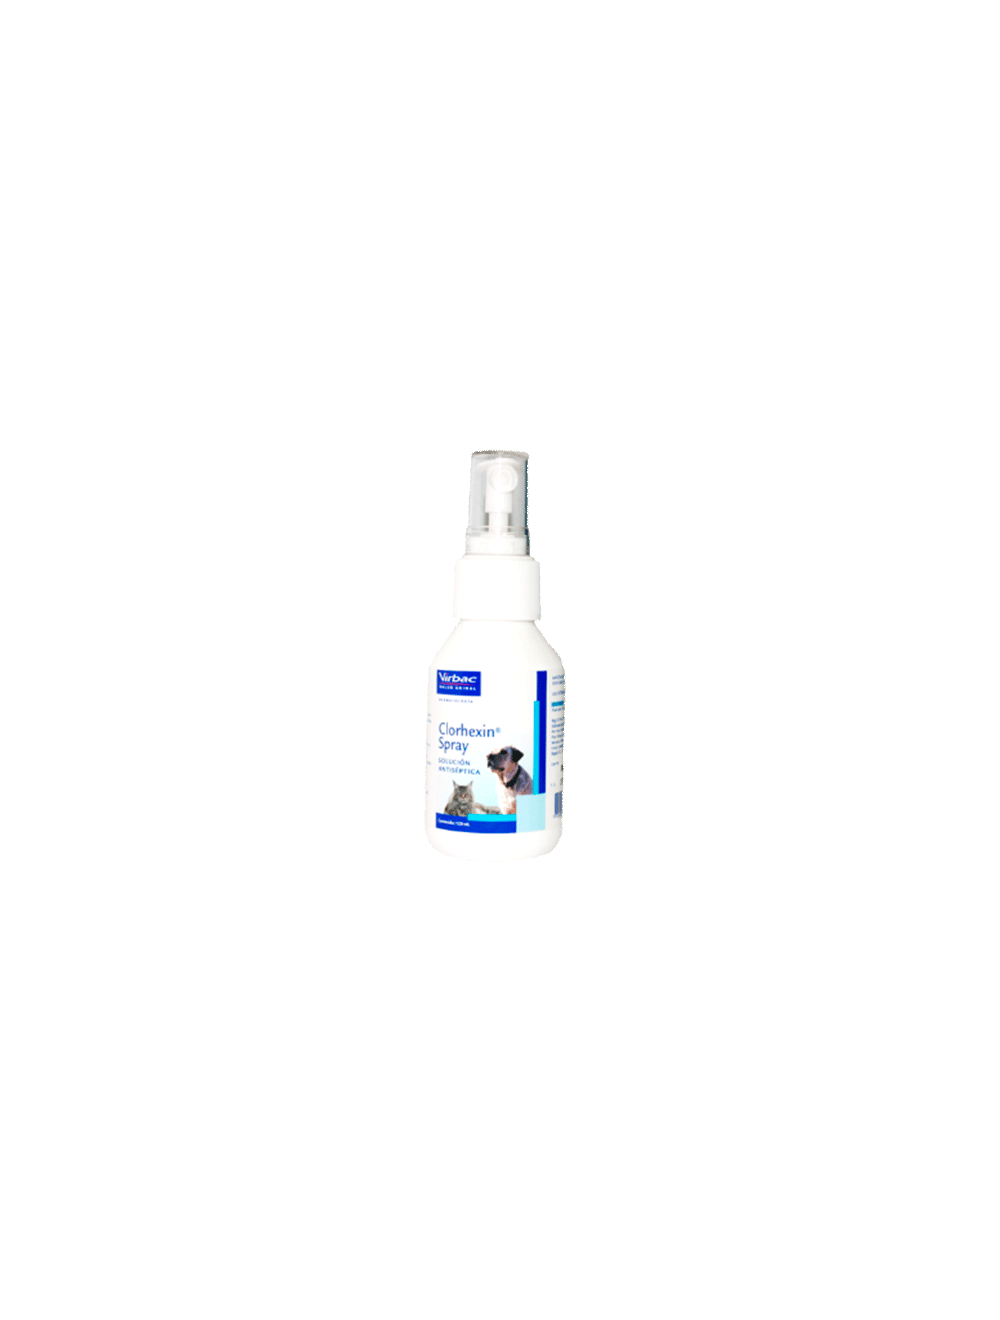 Clorhexin spray x 120 ml